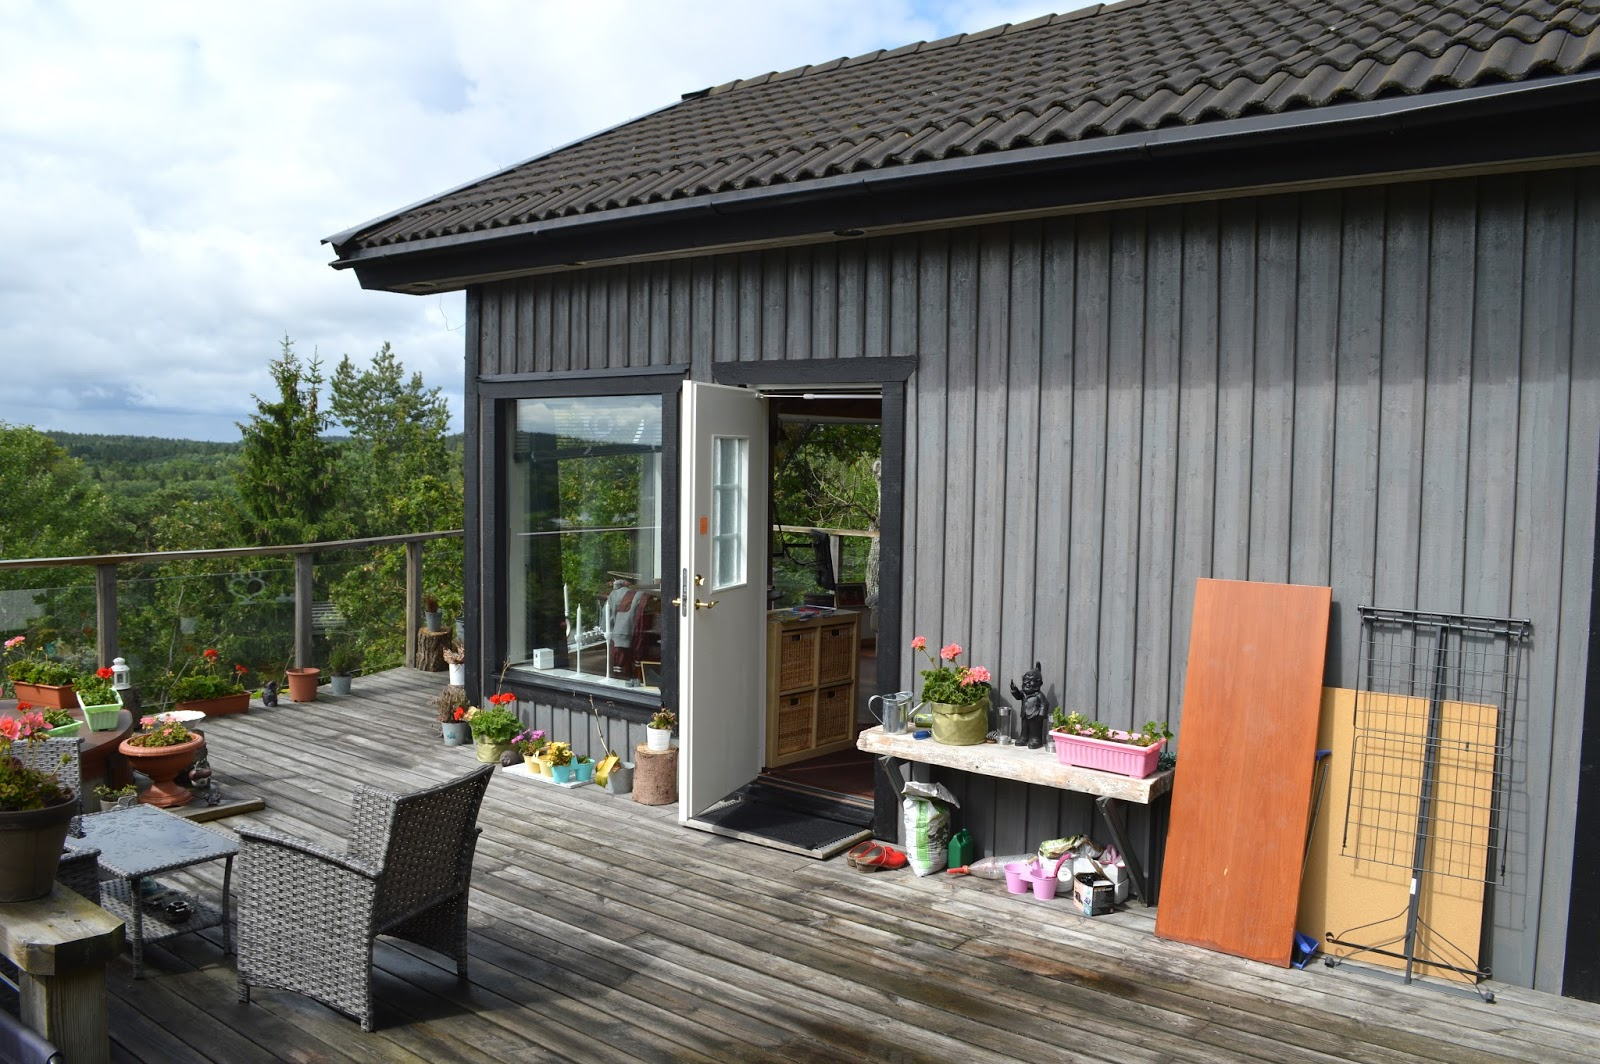 Airbnb house and terrace in Swedish countryside near Stockholm